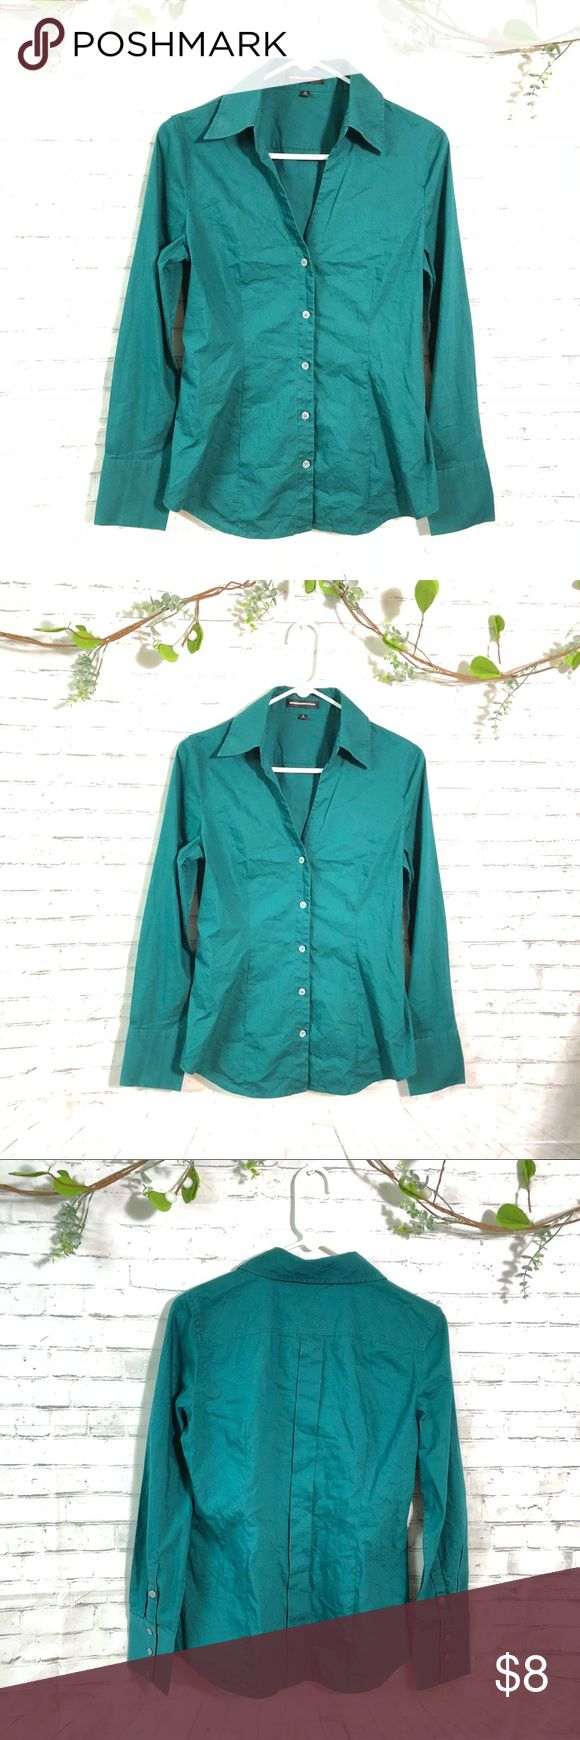 "Express design studio medium teal blouse Great condition! 19"" chest measurements Express Tops Blouses"